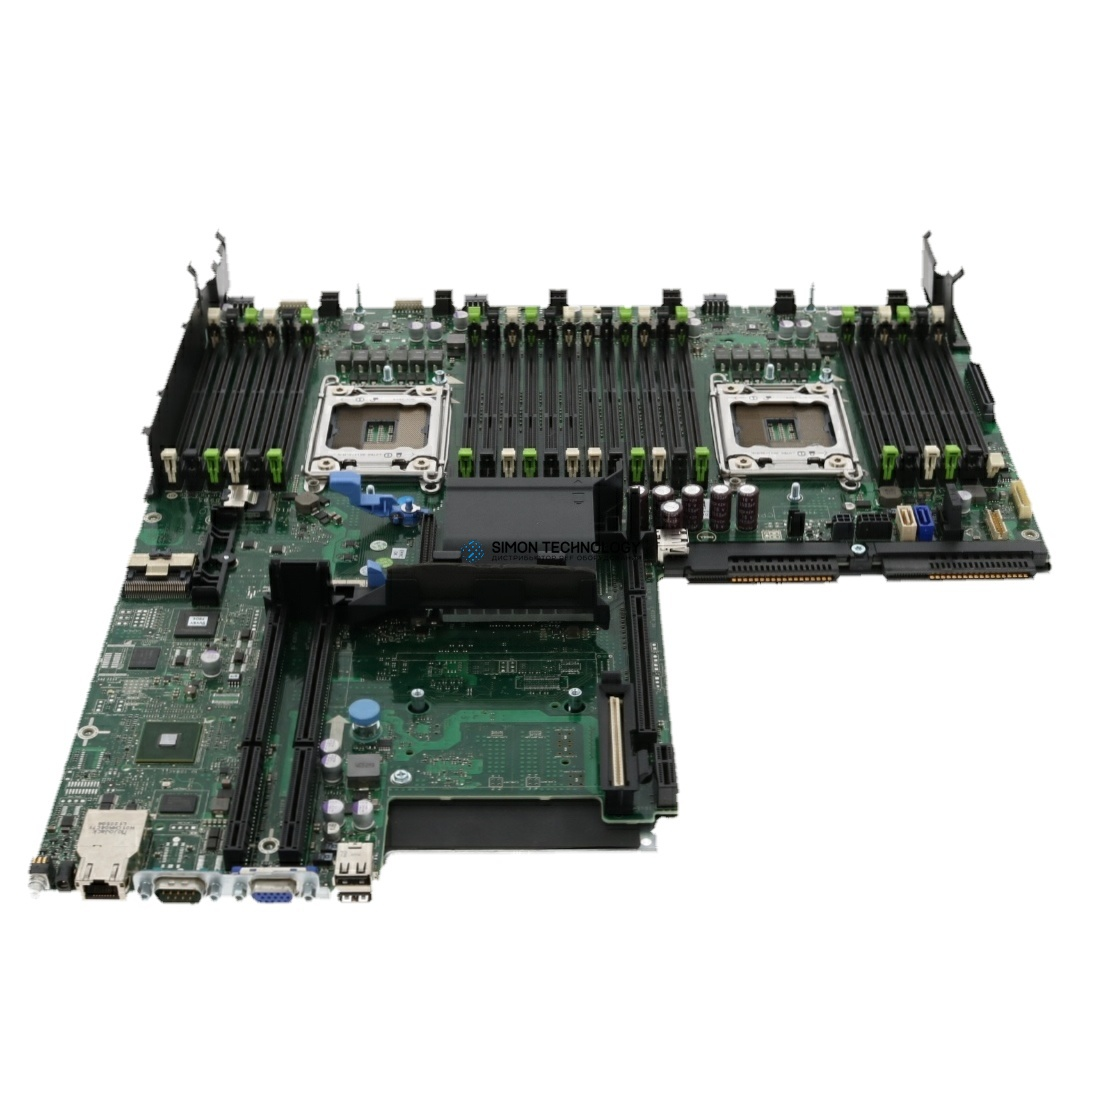 Материнская плата Dell PowerEdge R720 16x2.5 76DKC Ask for custom qoute (PER720-SFF-16-76DKC)